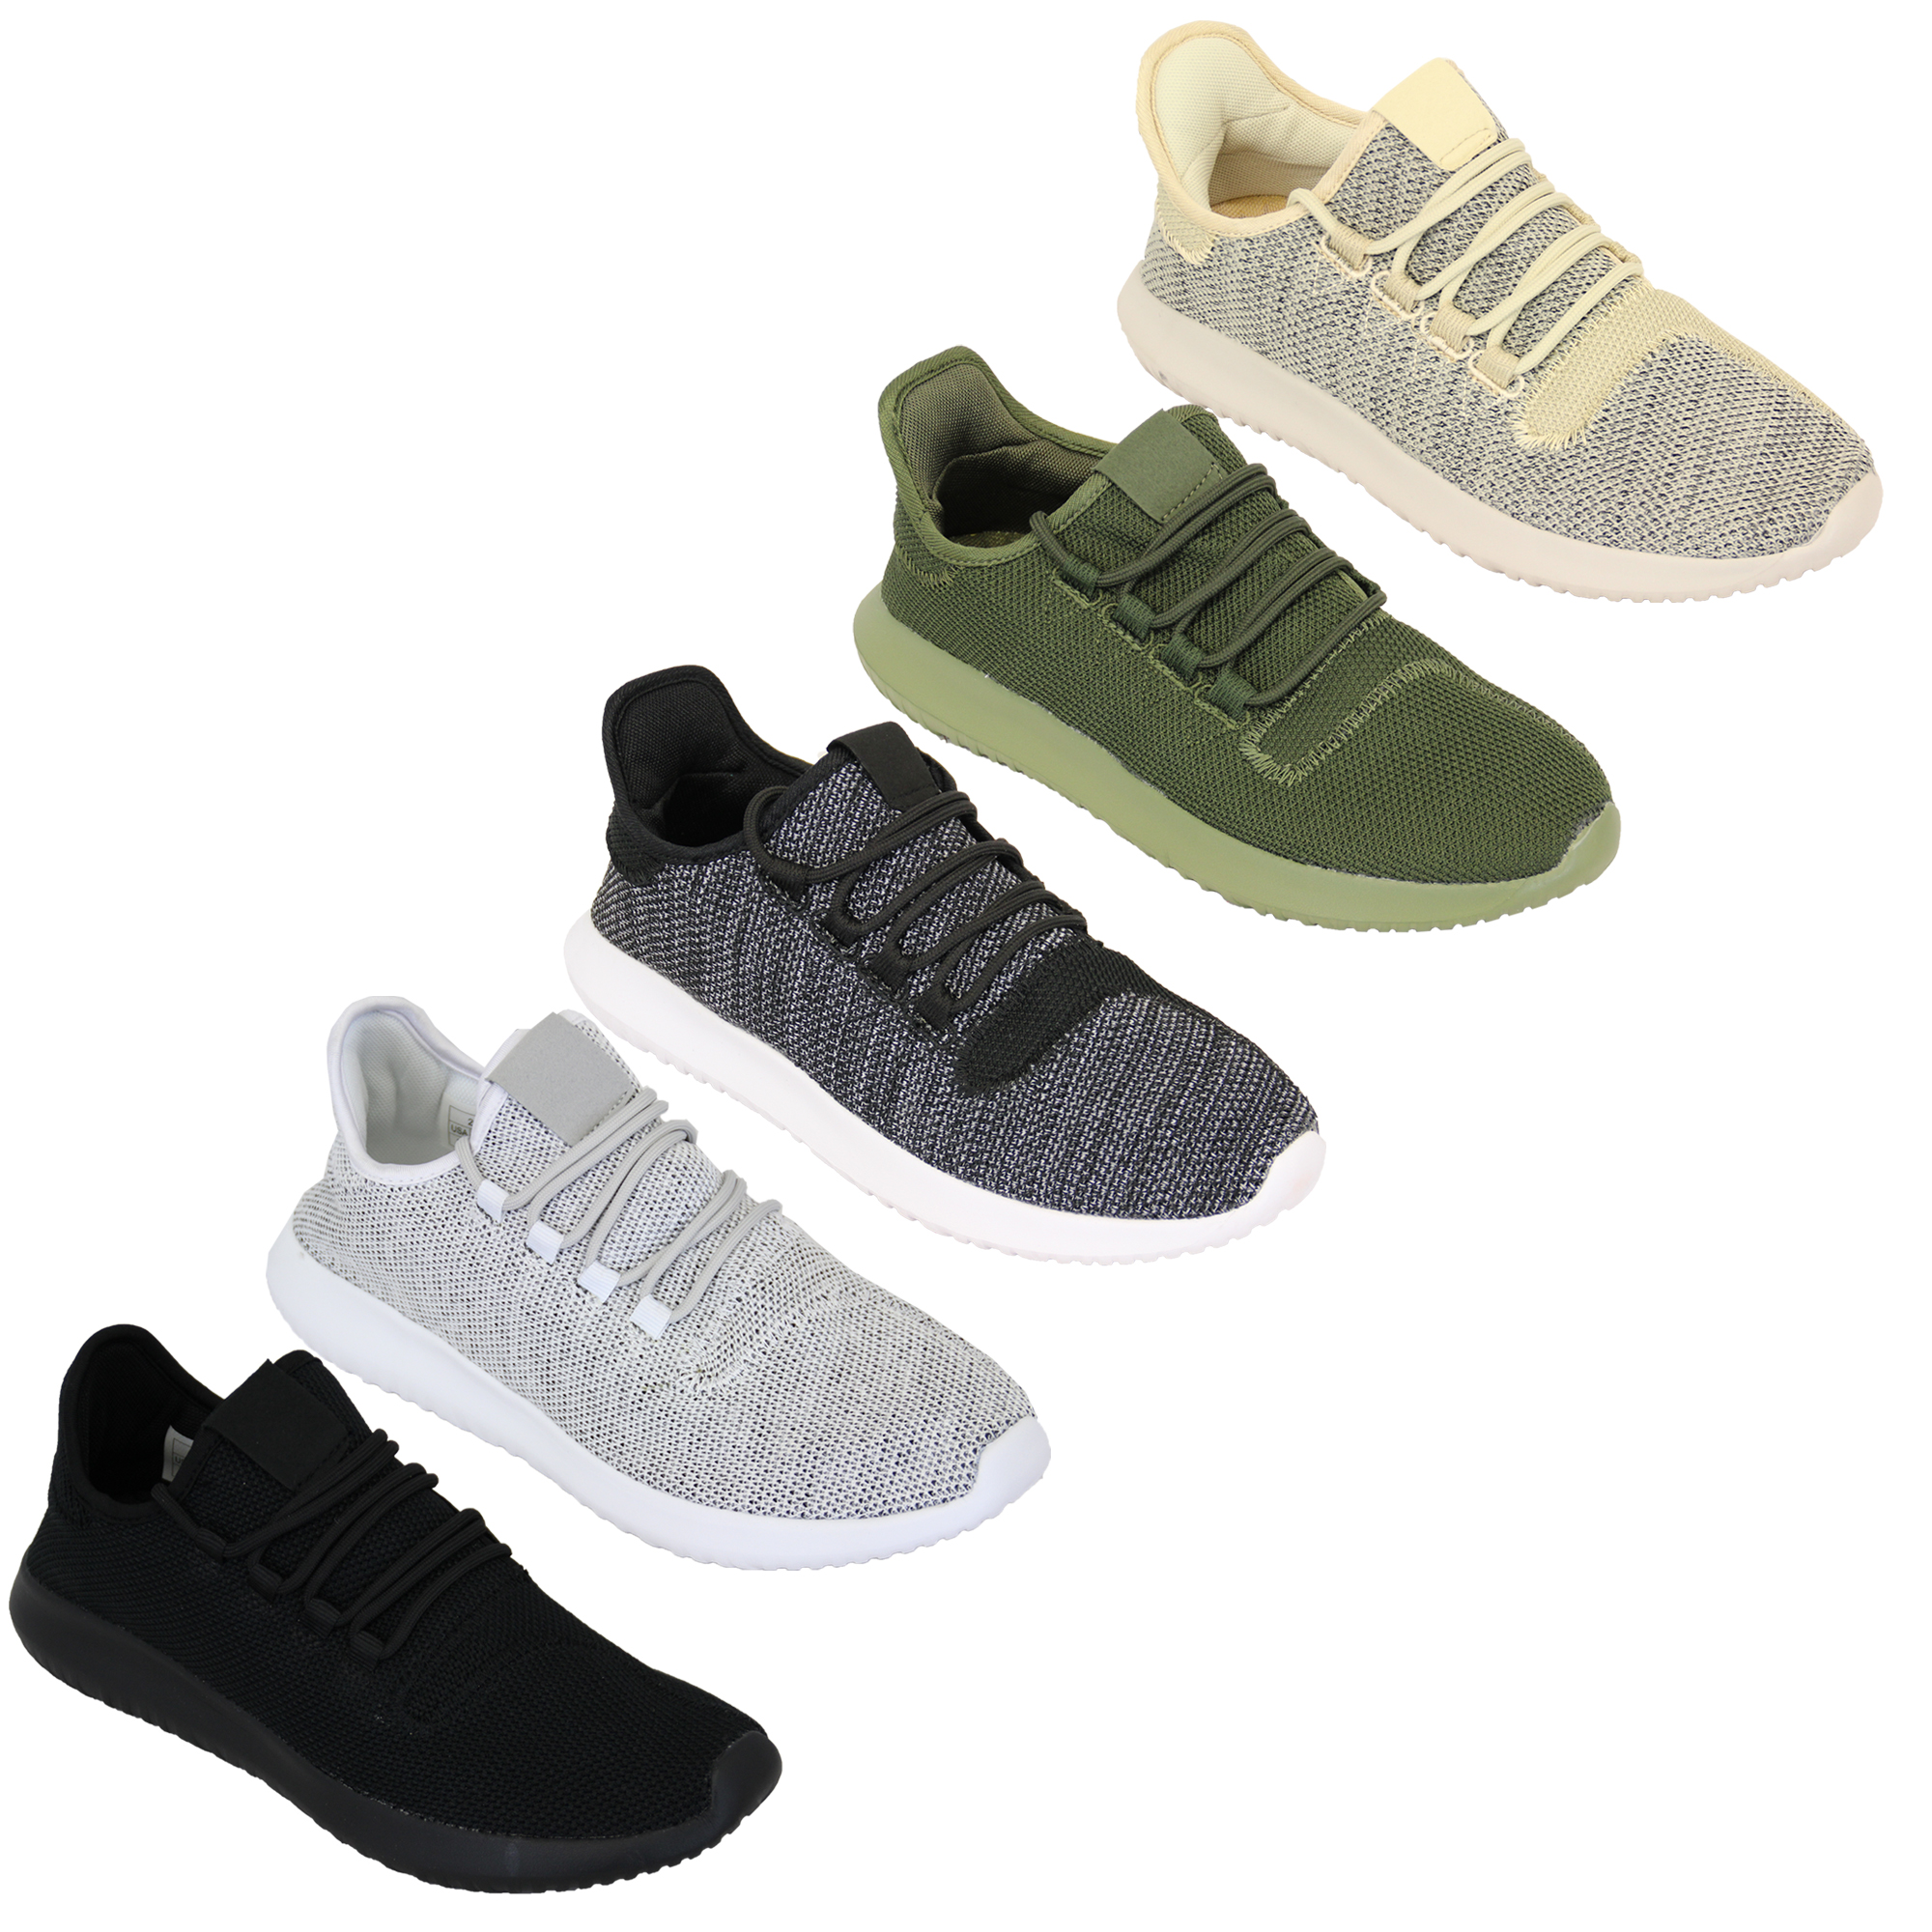 Mens Trainers Jogging Knit Shoes Lace Up Walking Running Sports Sneakers Gym New